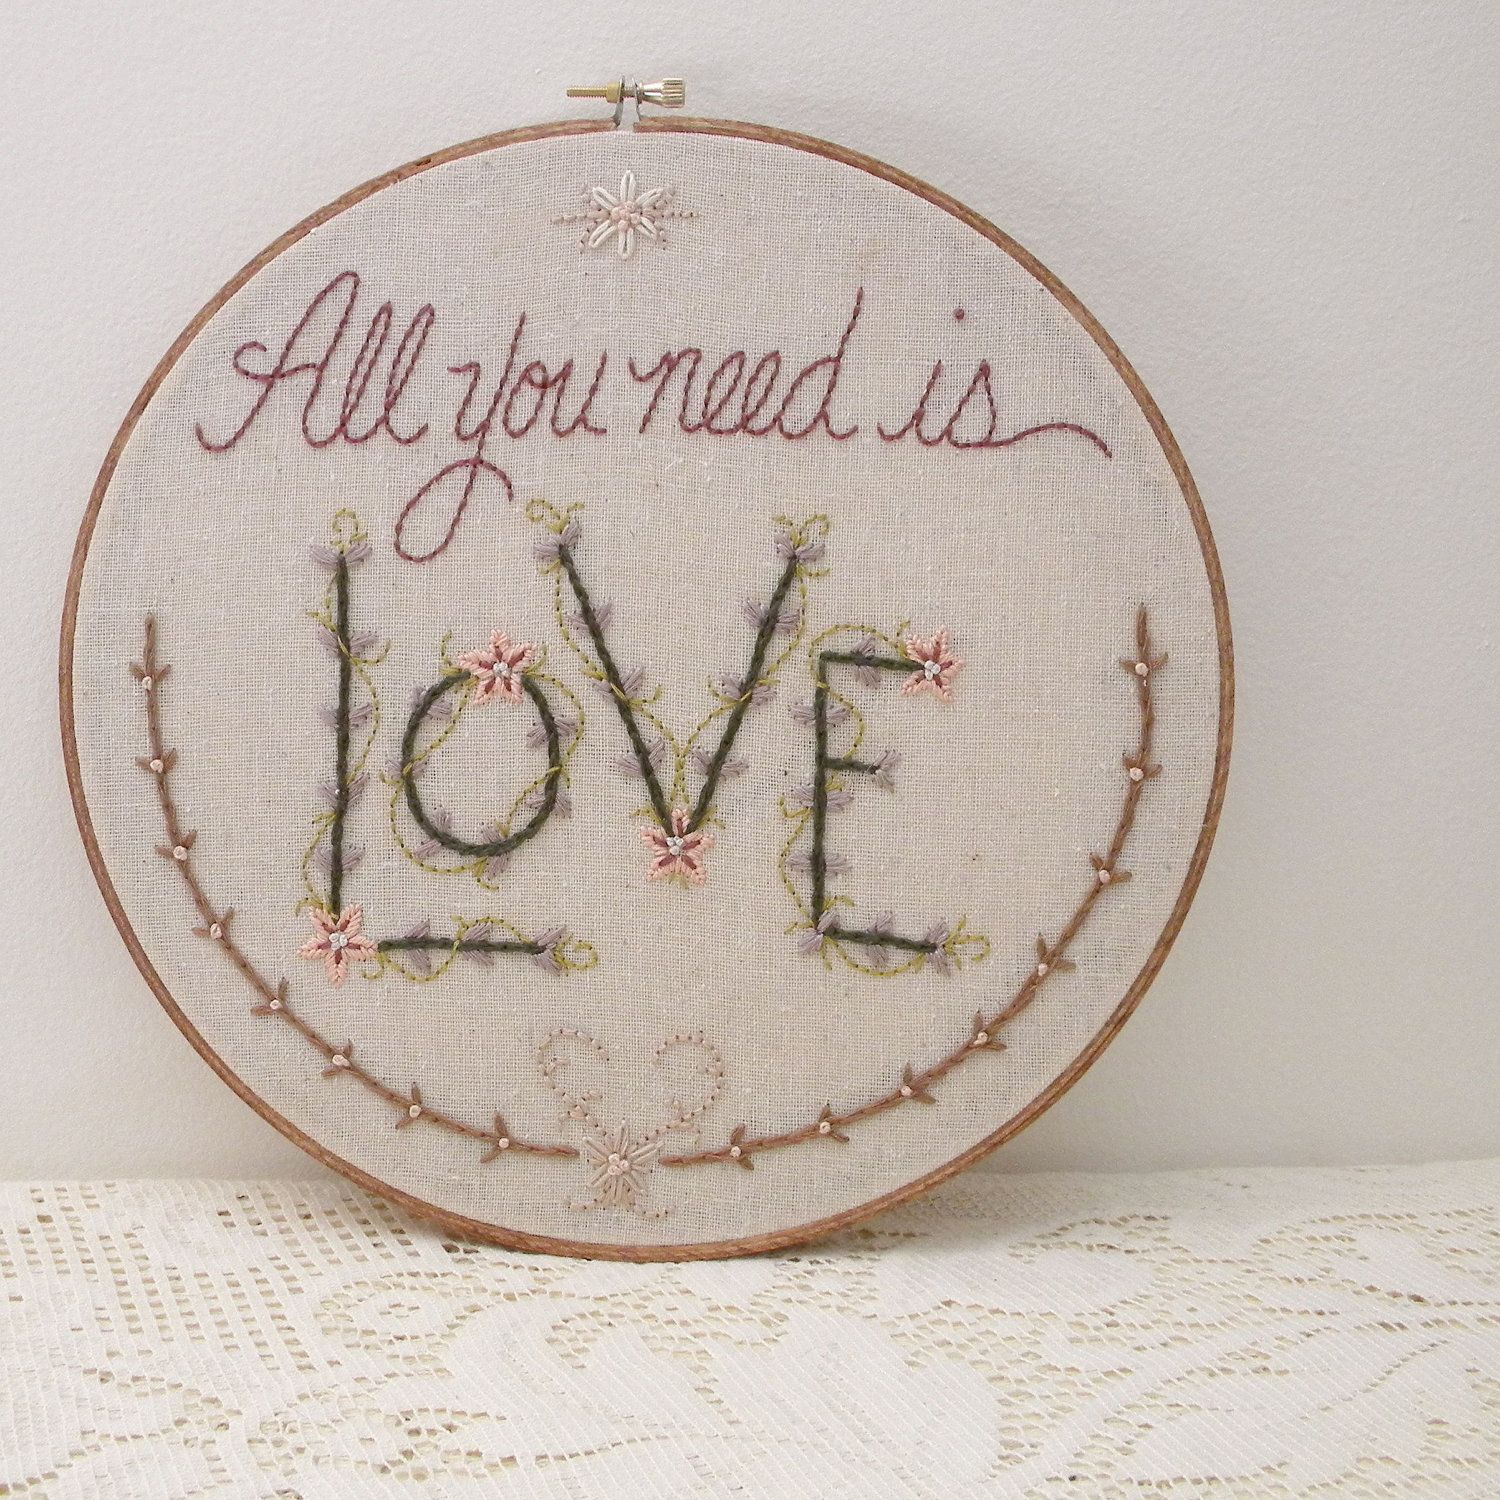 All you need is love romantic embroidered wall art by monkey